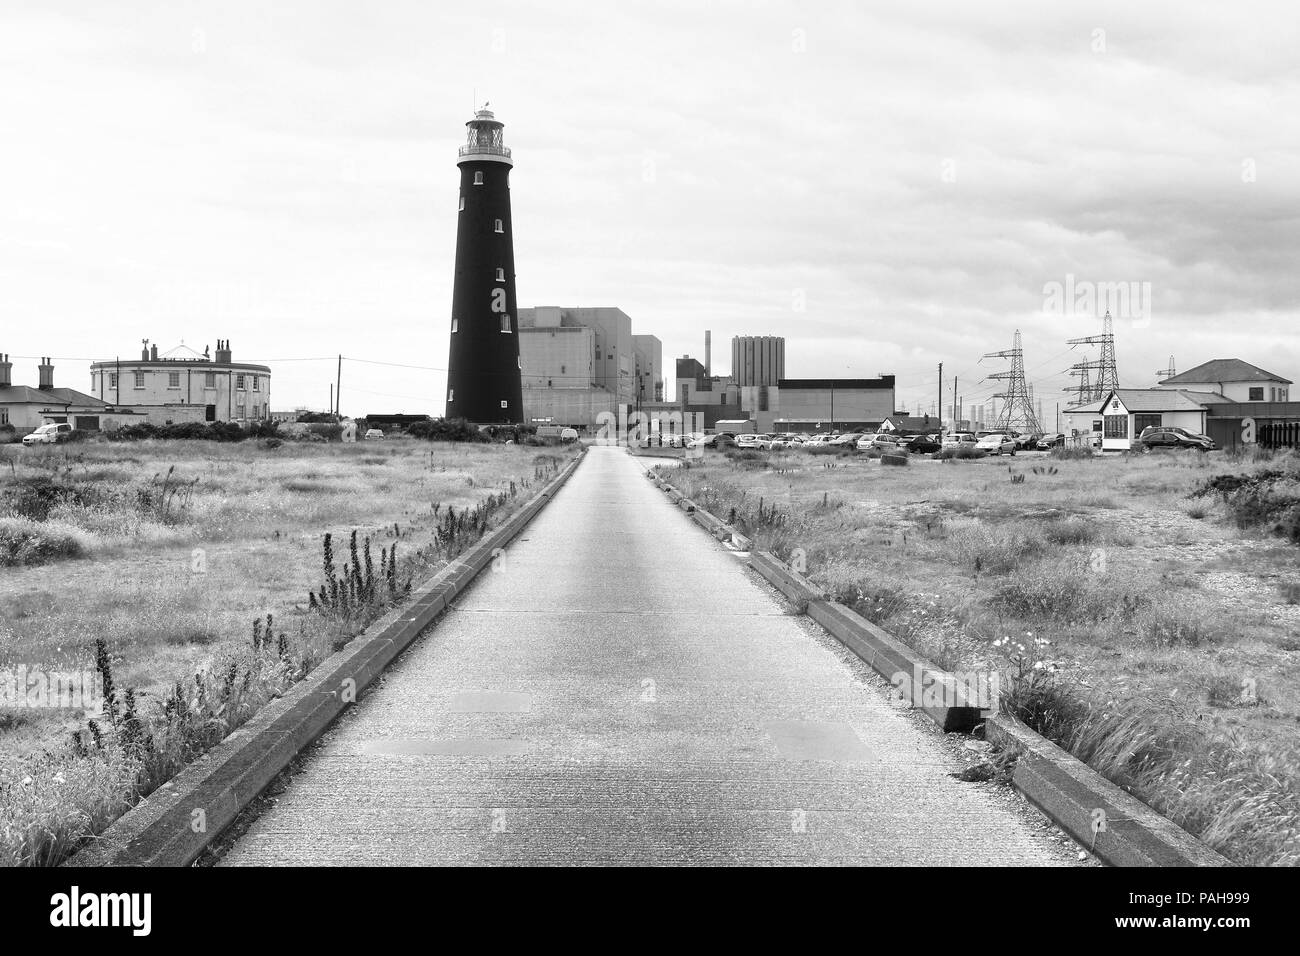 Dungeness Old Lighthouse and Power Station - Stock Image